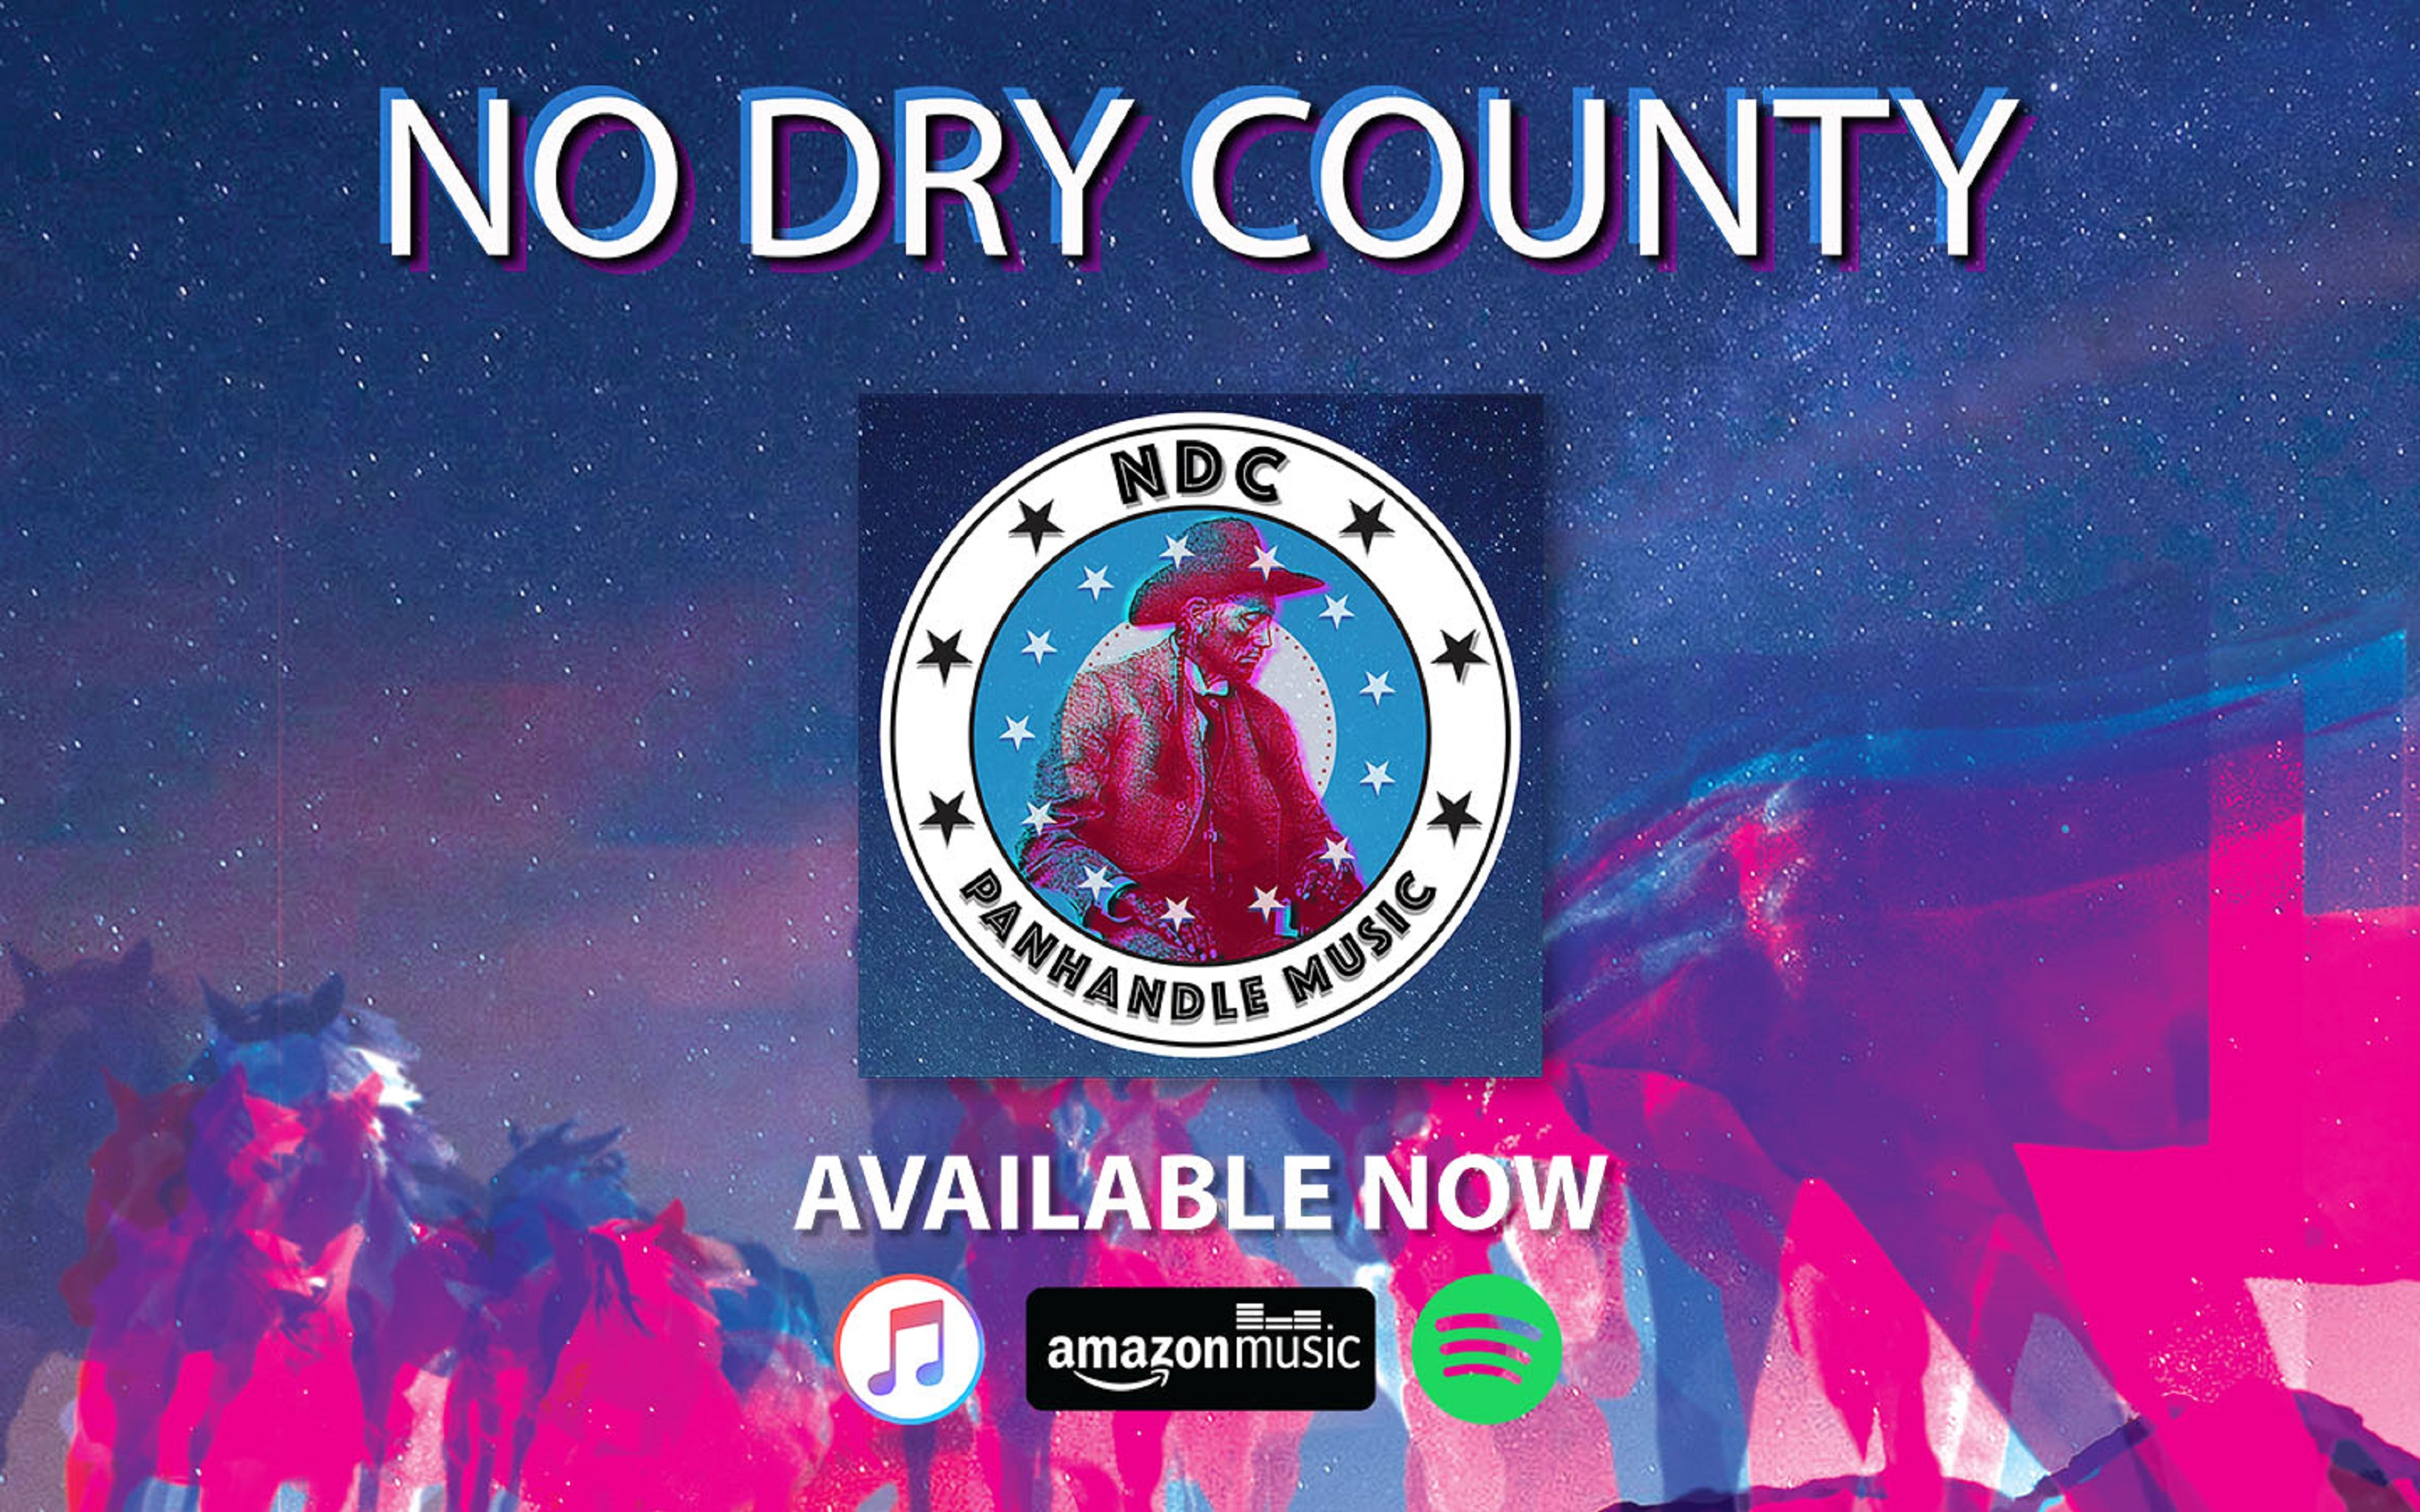 No Dry County Make Waves with New Album